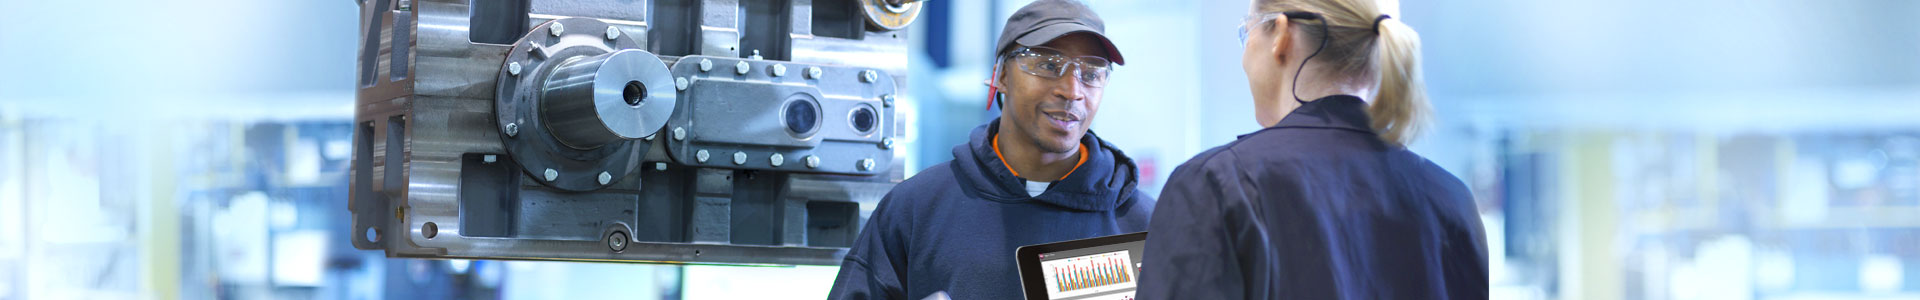 manufacturers have access to real-time data